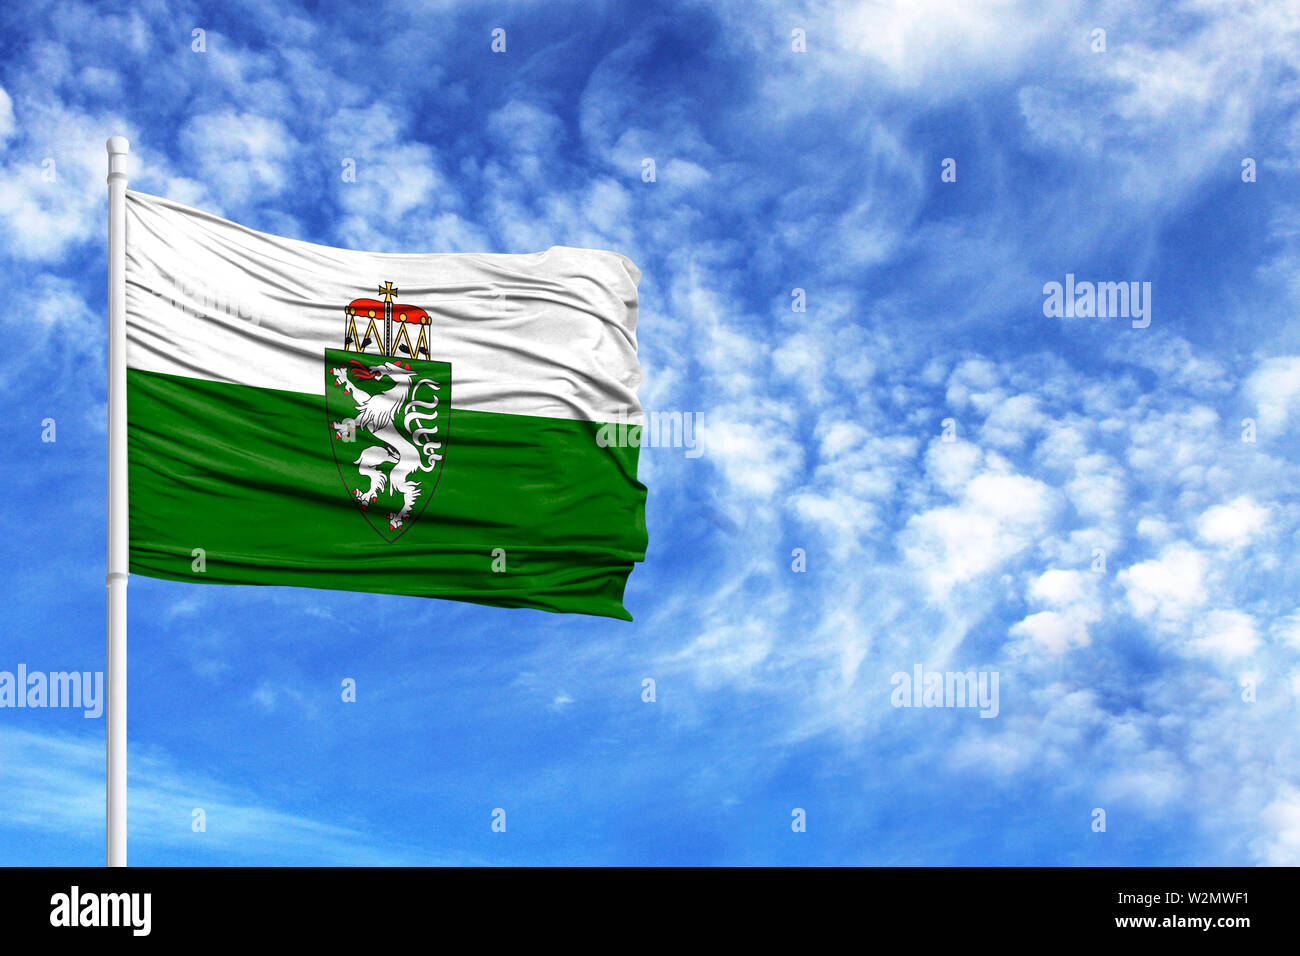 National flag of Styria on a flagpole in front of blue sky - Stock Image